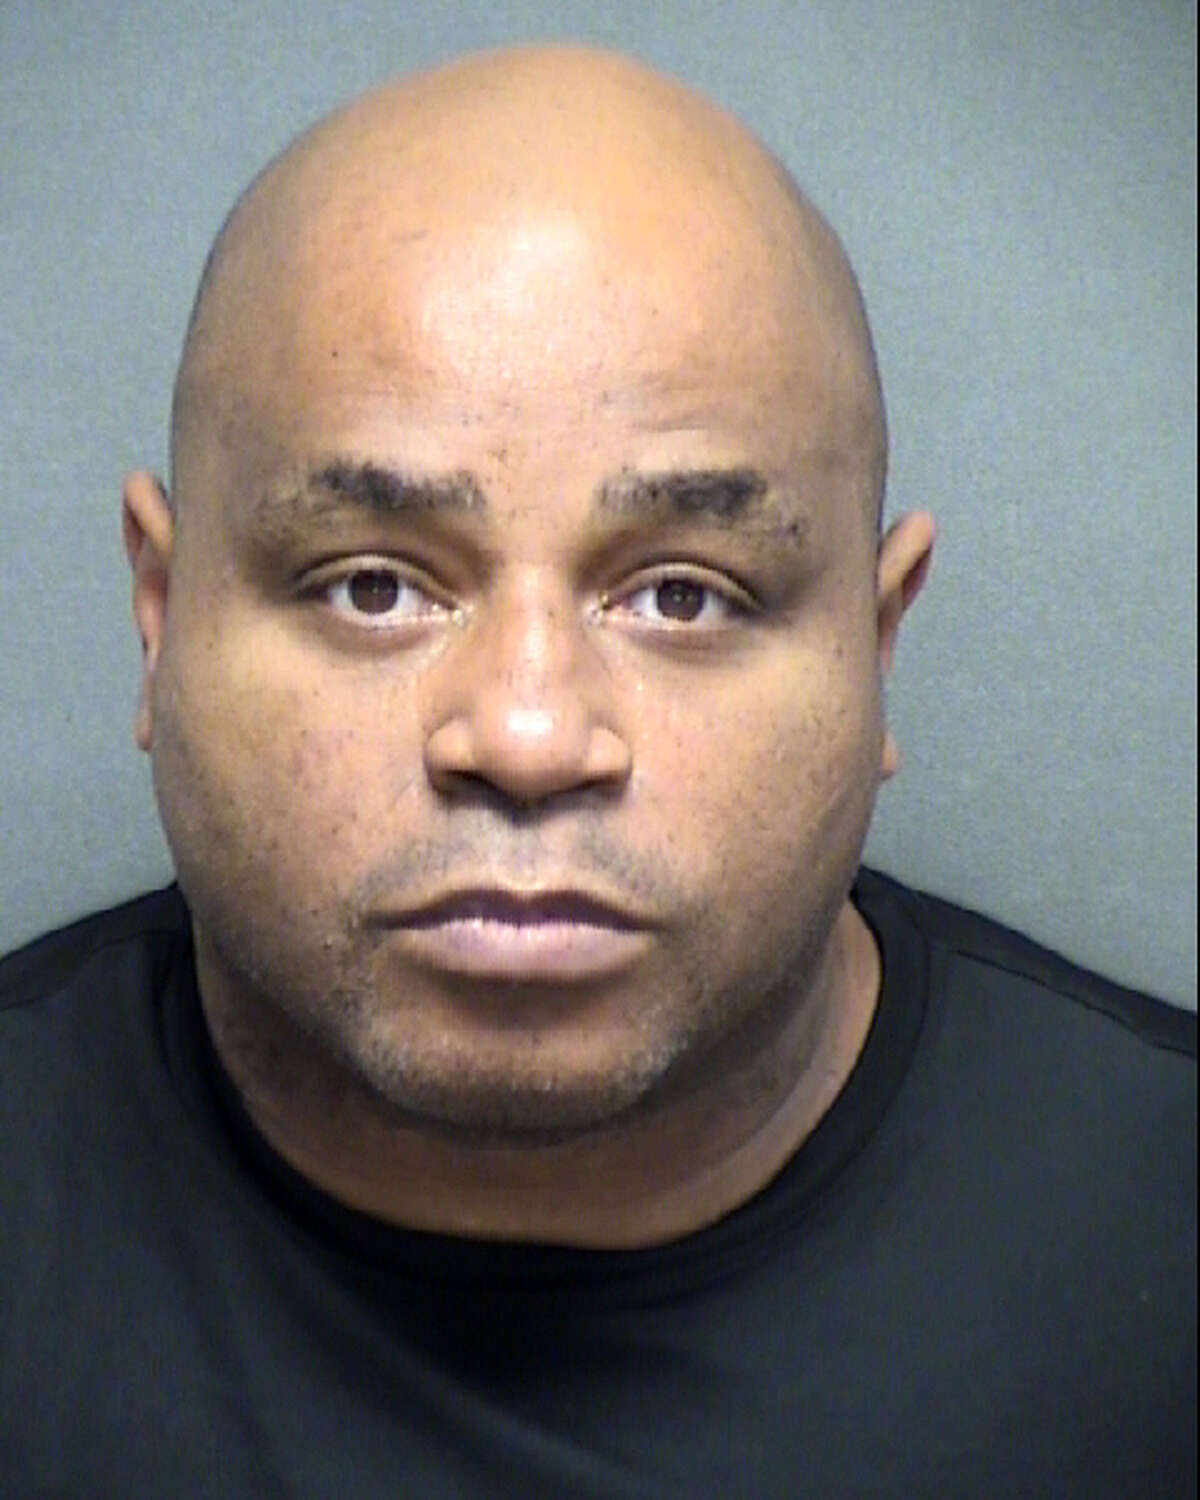 Bexar County Sheriff's Deputy Sherman Andrews, 48, was arrested Tuesday night in connection with evidence tampering.